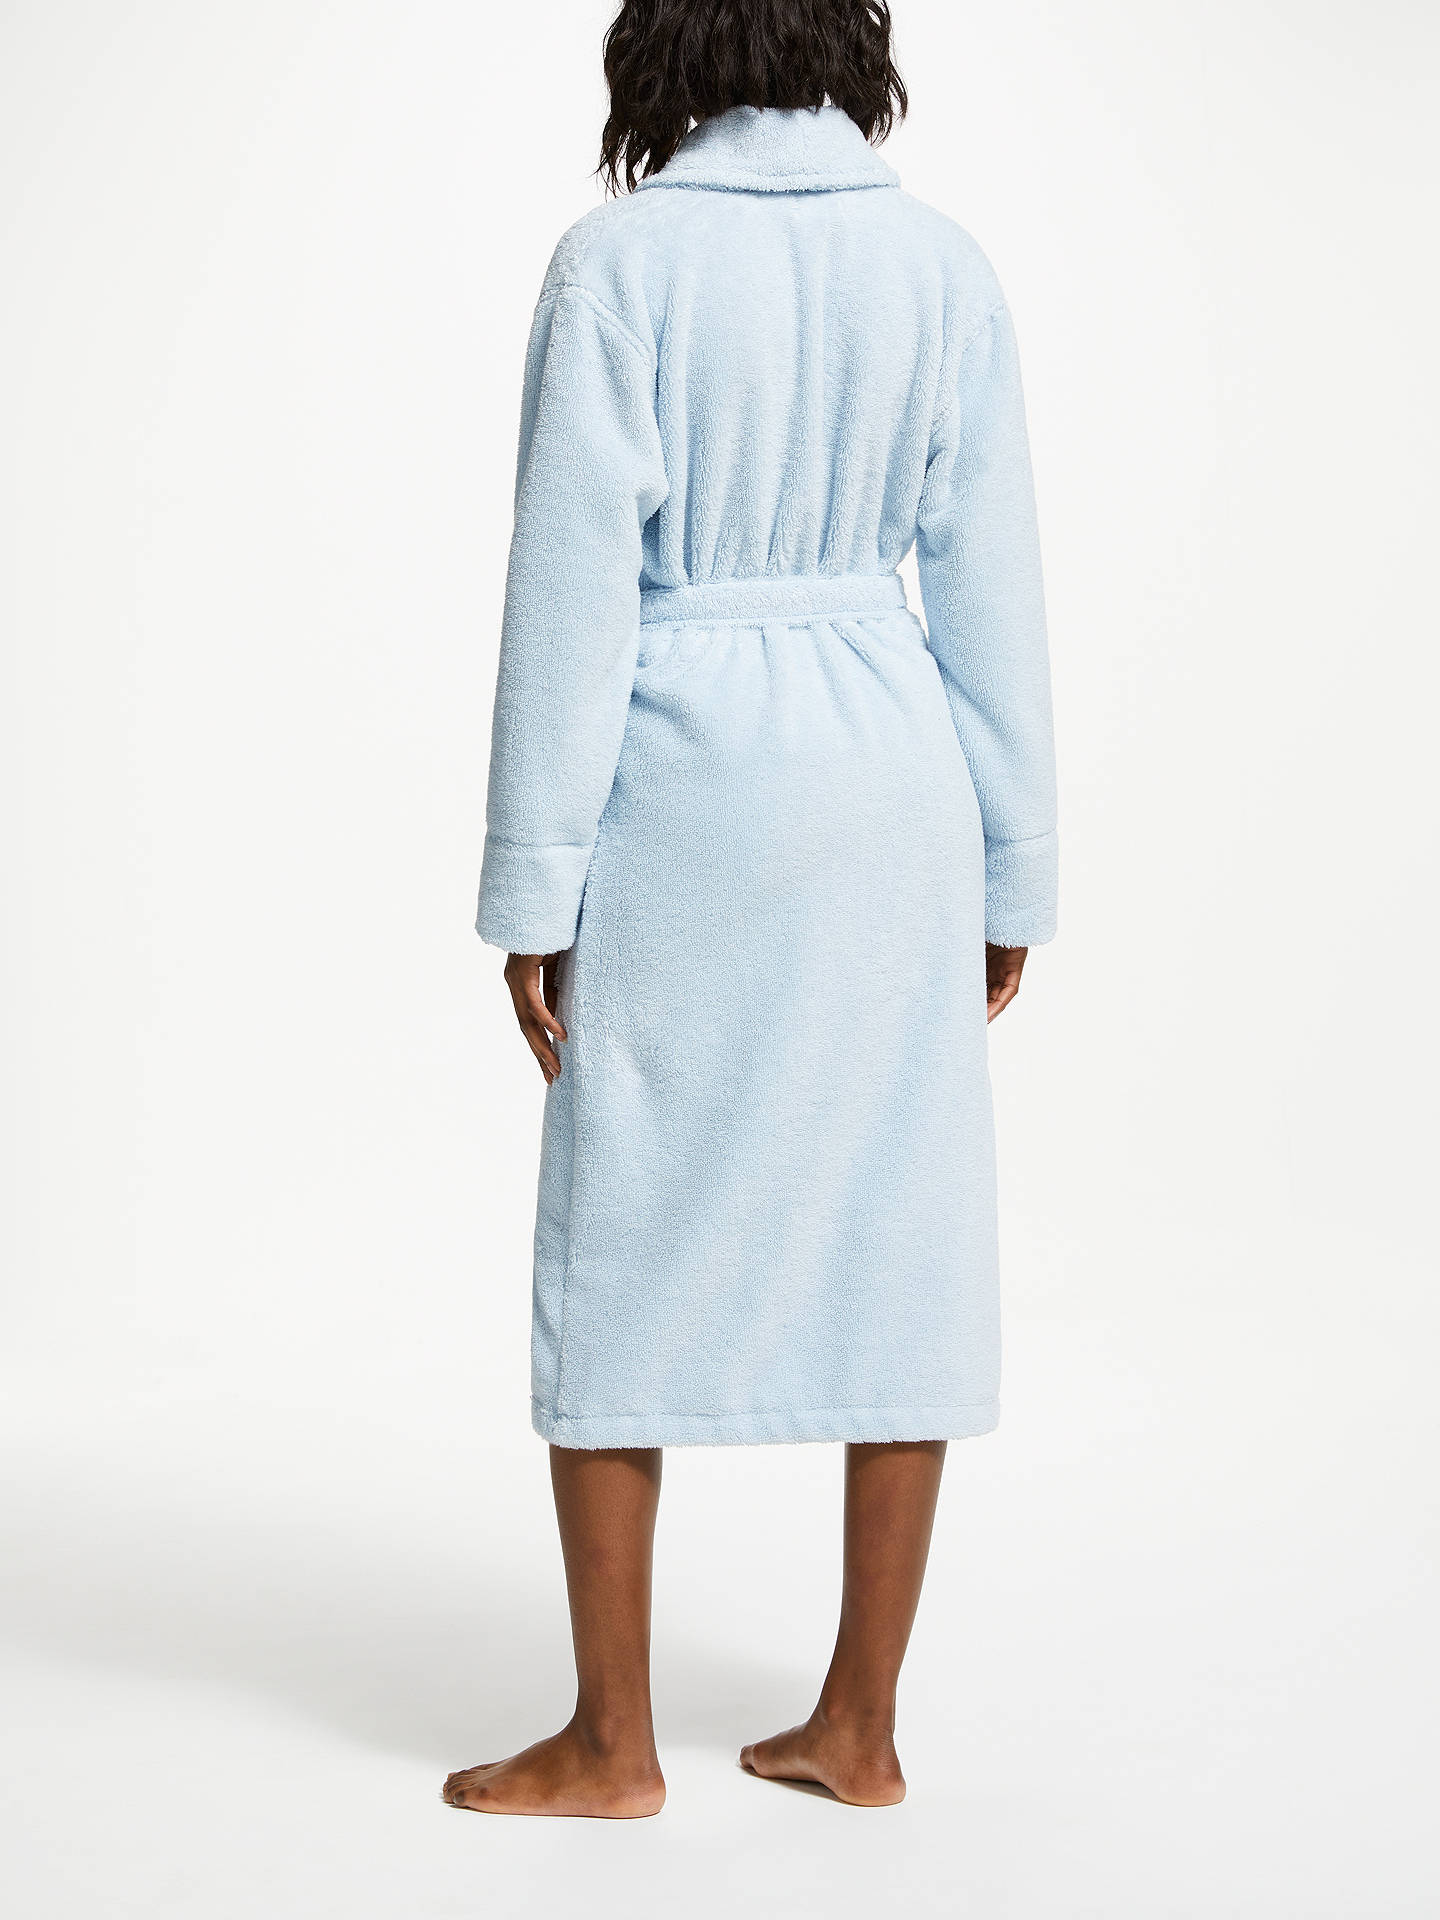 BuyJohn Lewis & Partners Luxury Towelling Robe, Blue, S Online at johnlewis.com